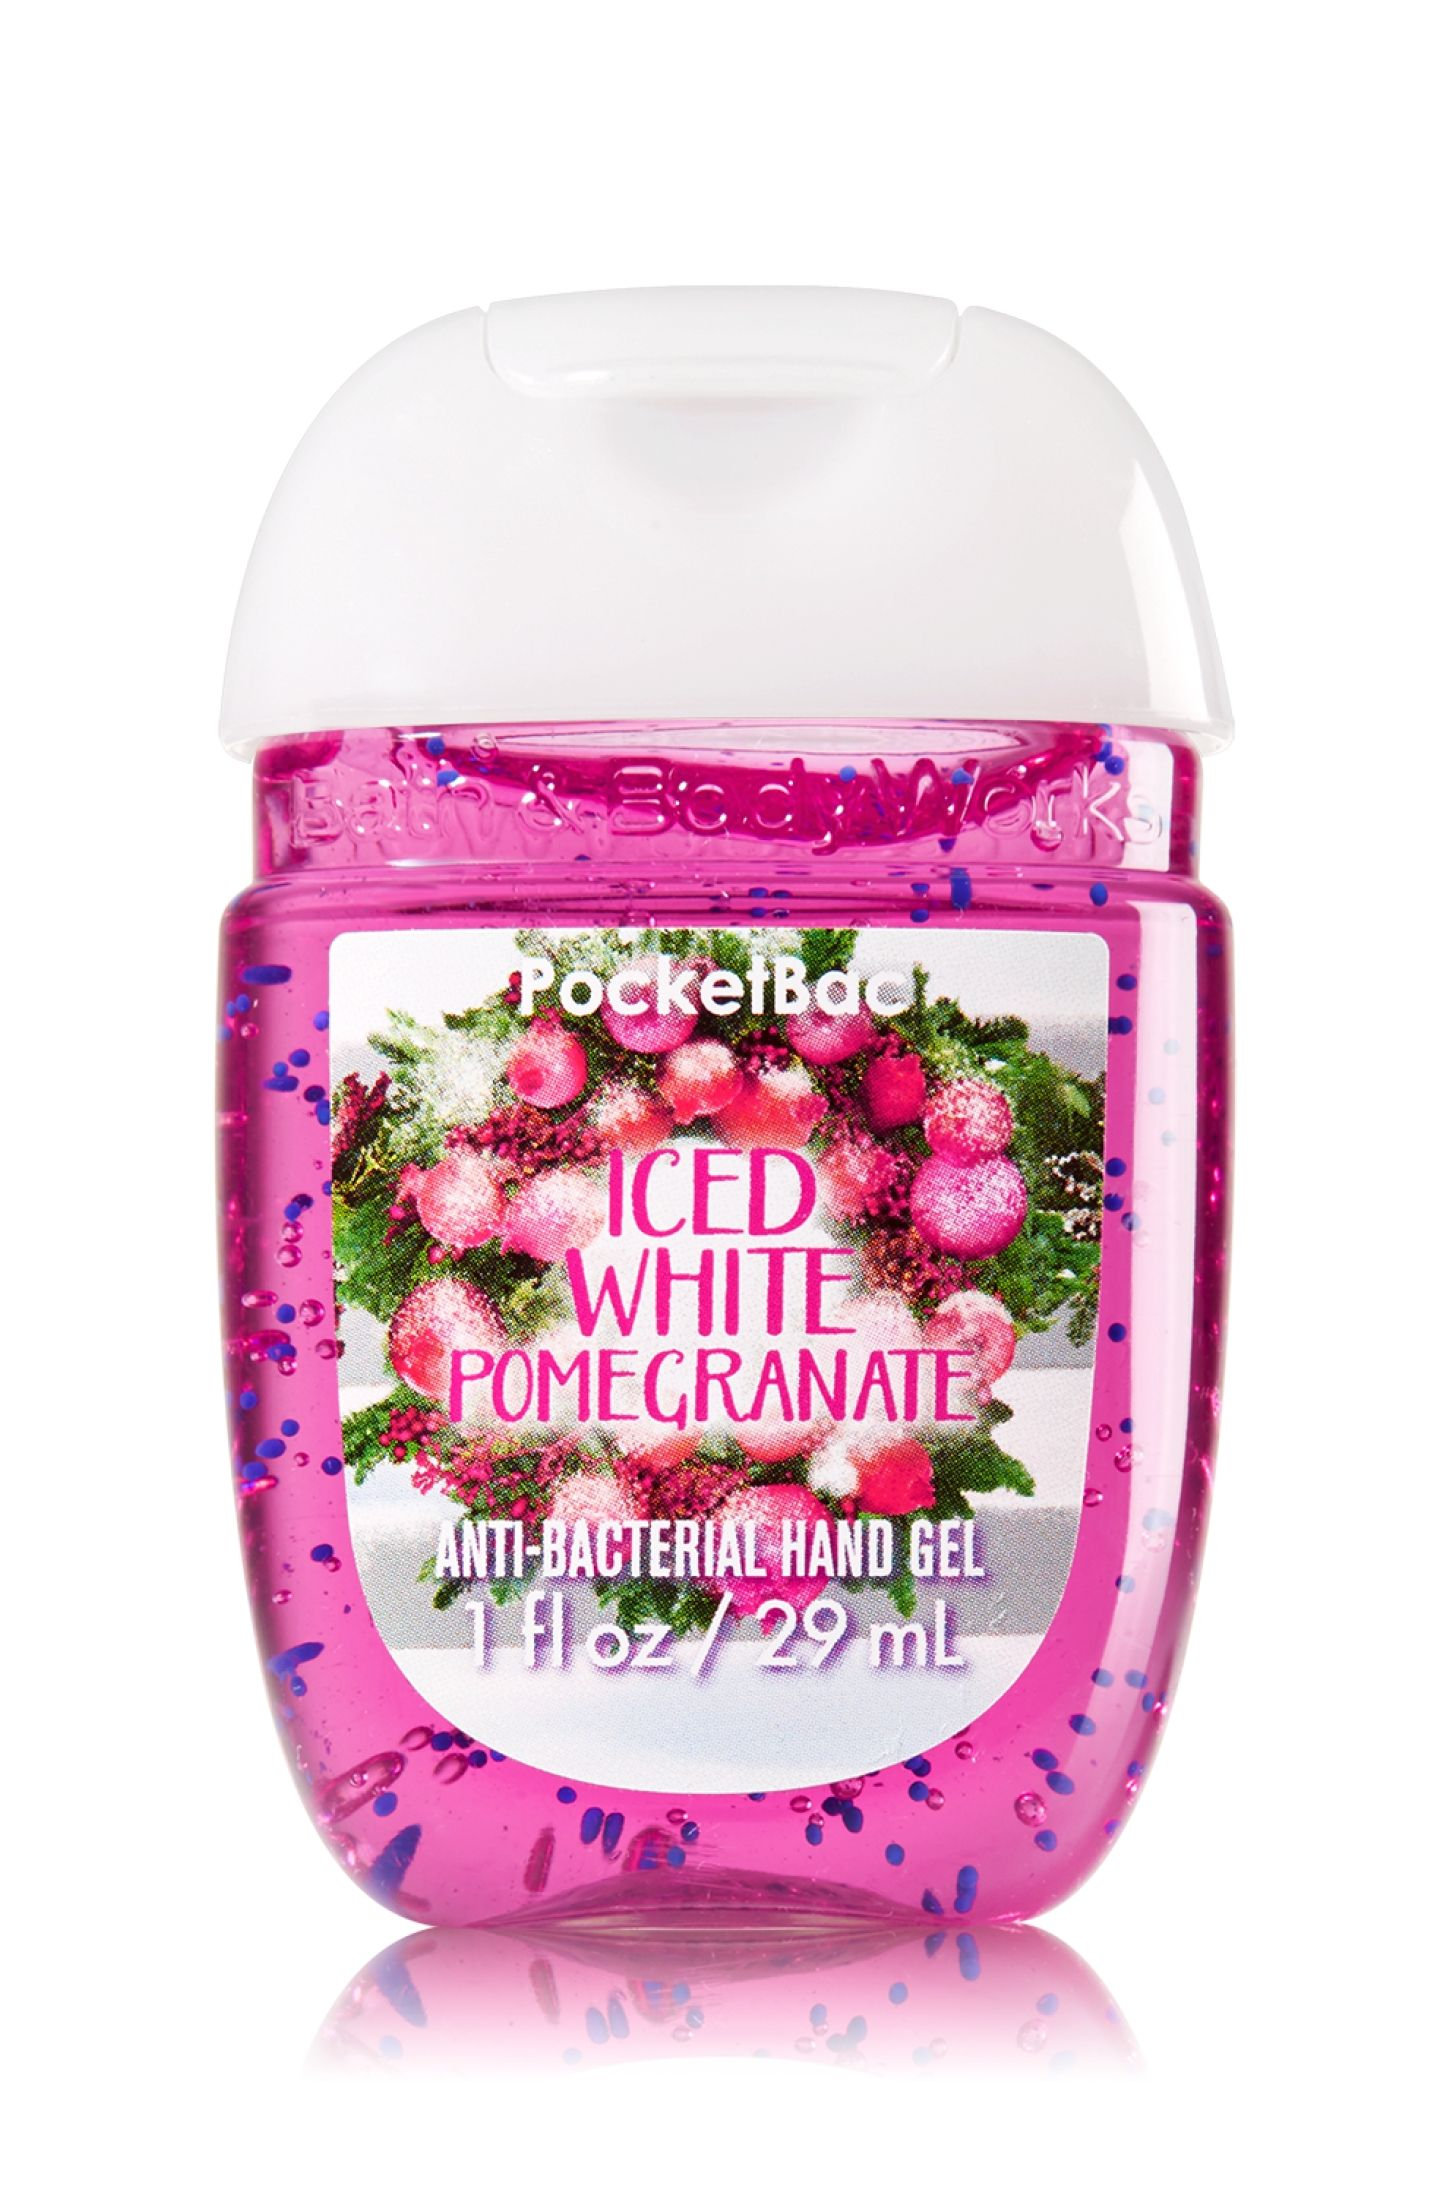 Bath Body Works Iced White Pomegranate Pocketbac Sanitizing Hand